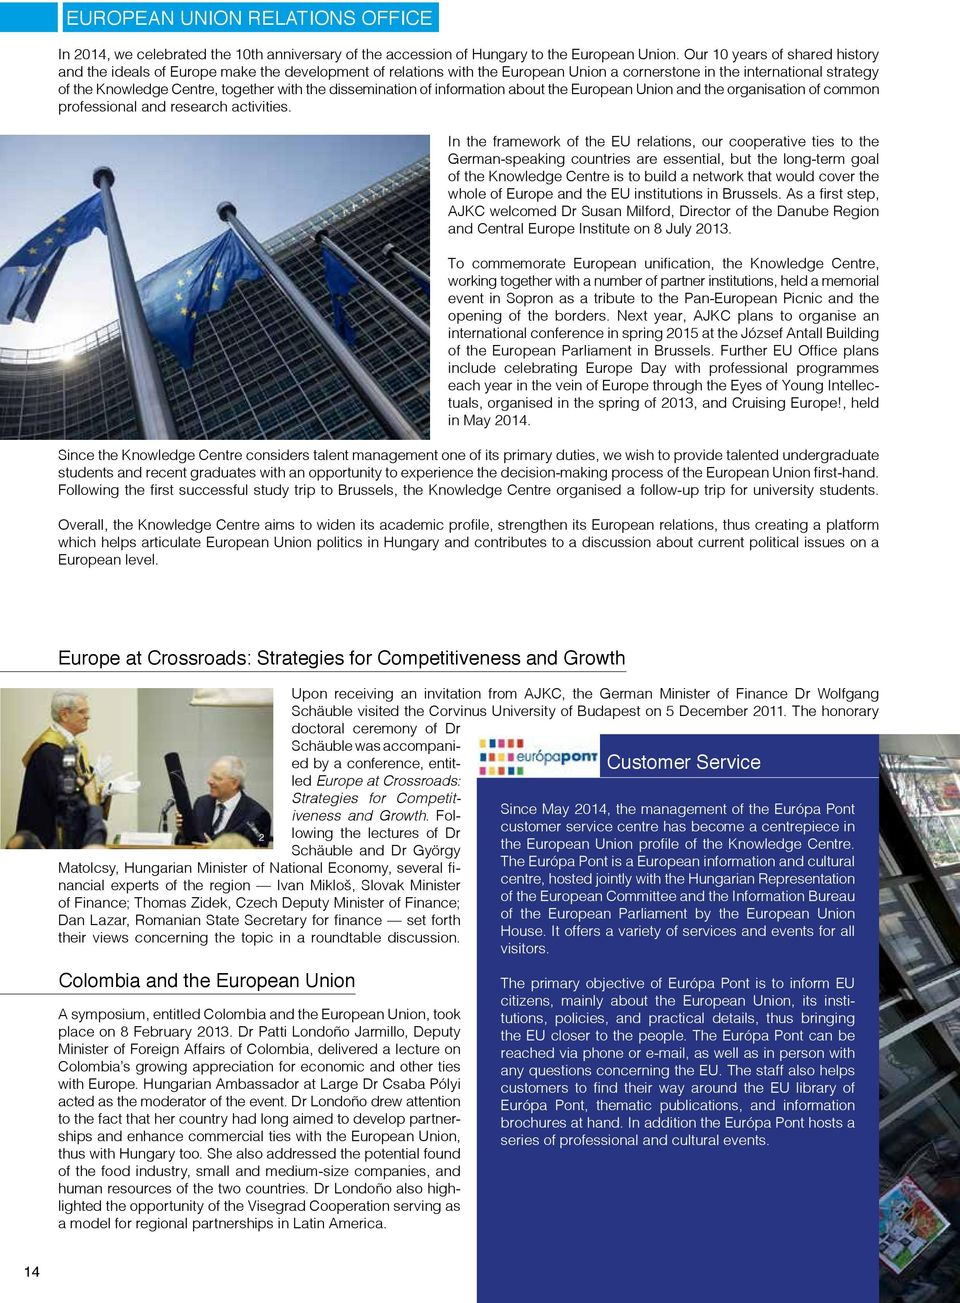 the dissemination of information about the European Union and the organisation of common professional and research activities.